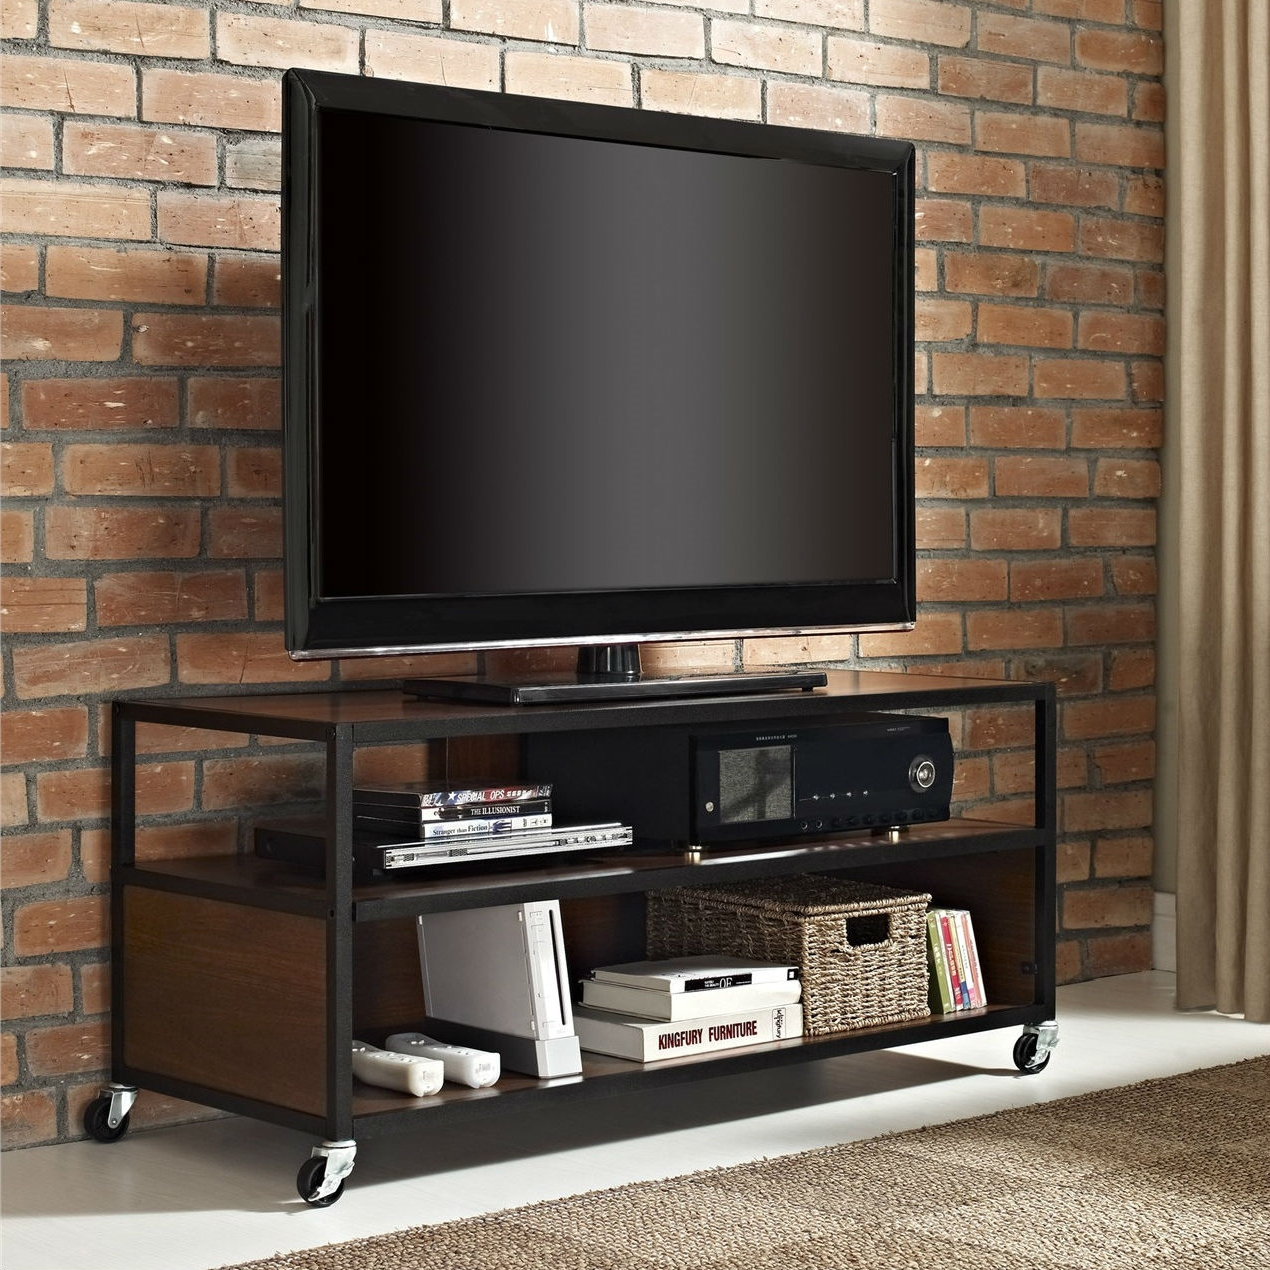 Mounted Flat For Diy Center Row Lo Screen Wall Ideas Fireplace Small With Regard To 2017 Small Tv Stands On Wheels (Gallery 17 of 20)